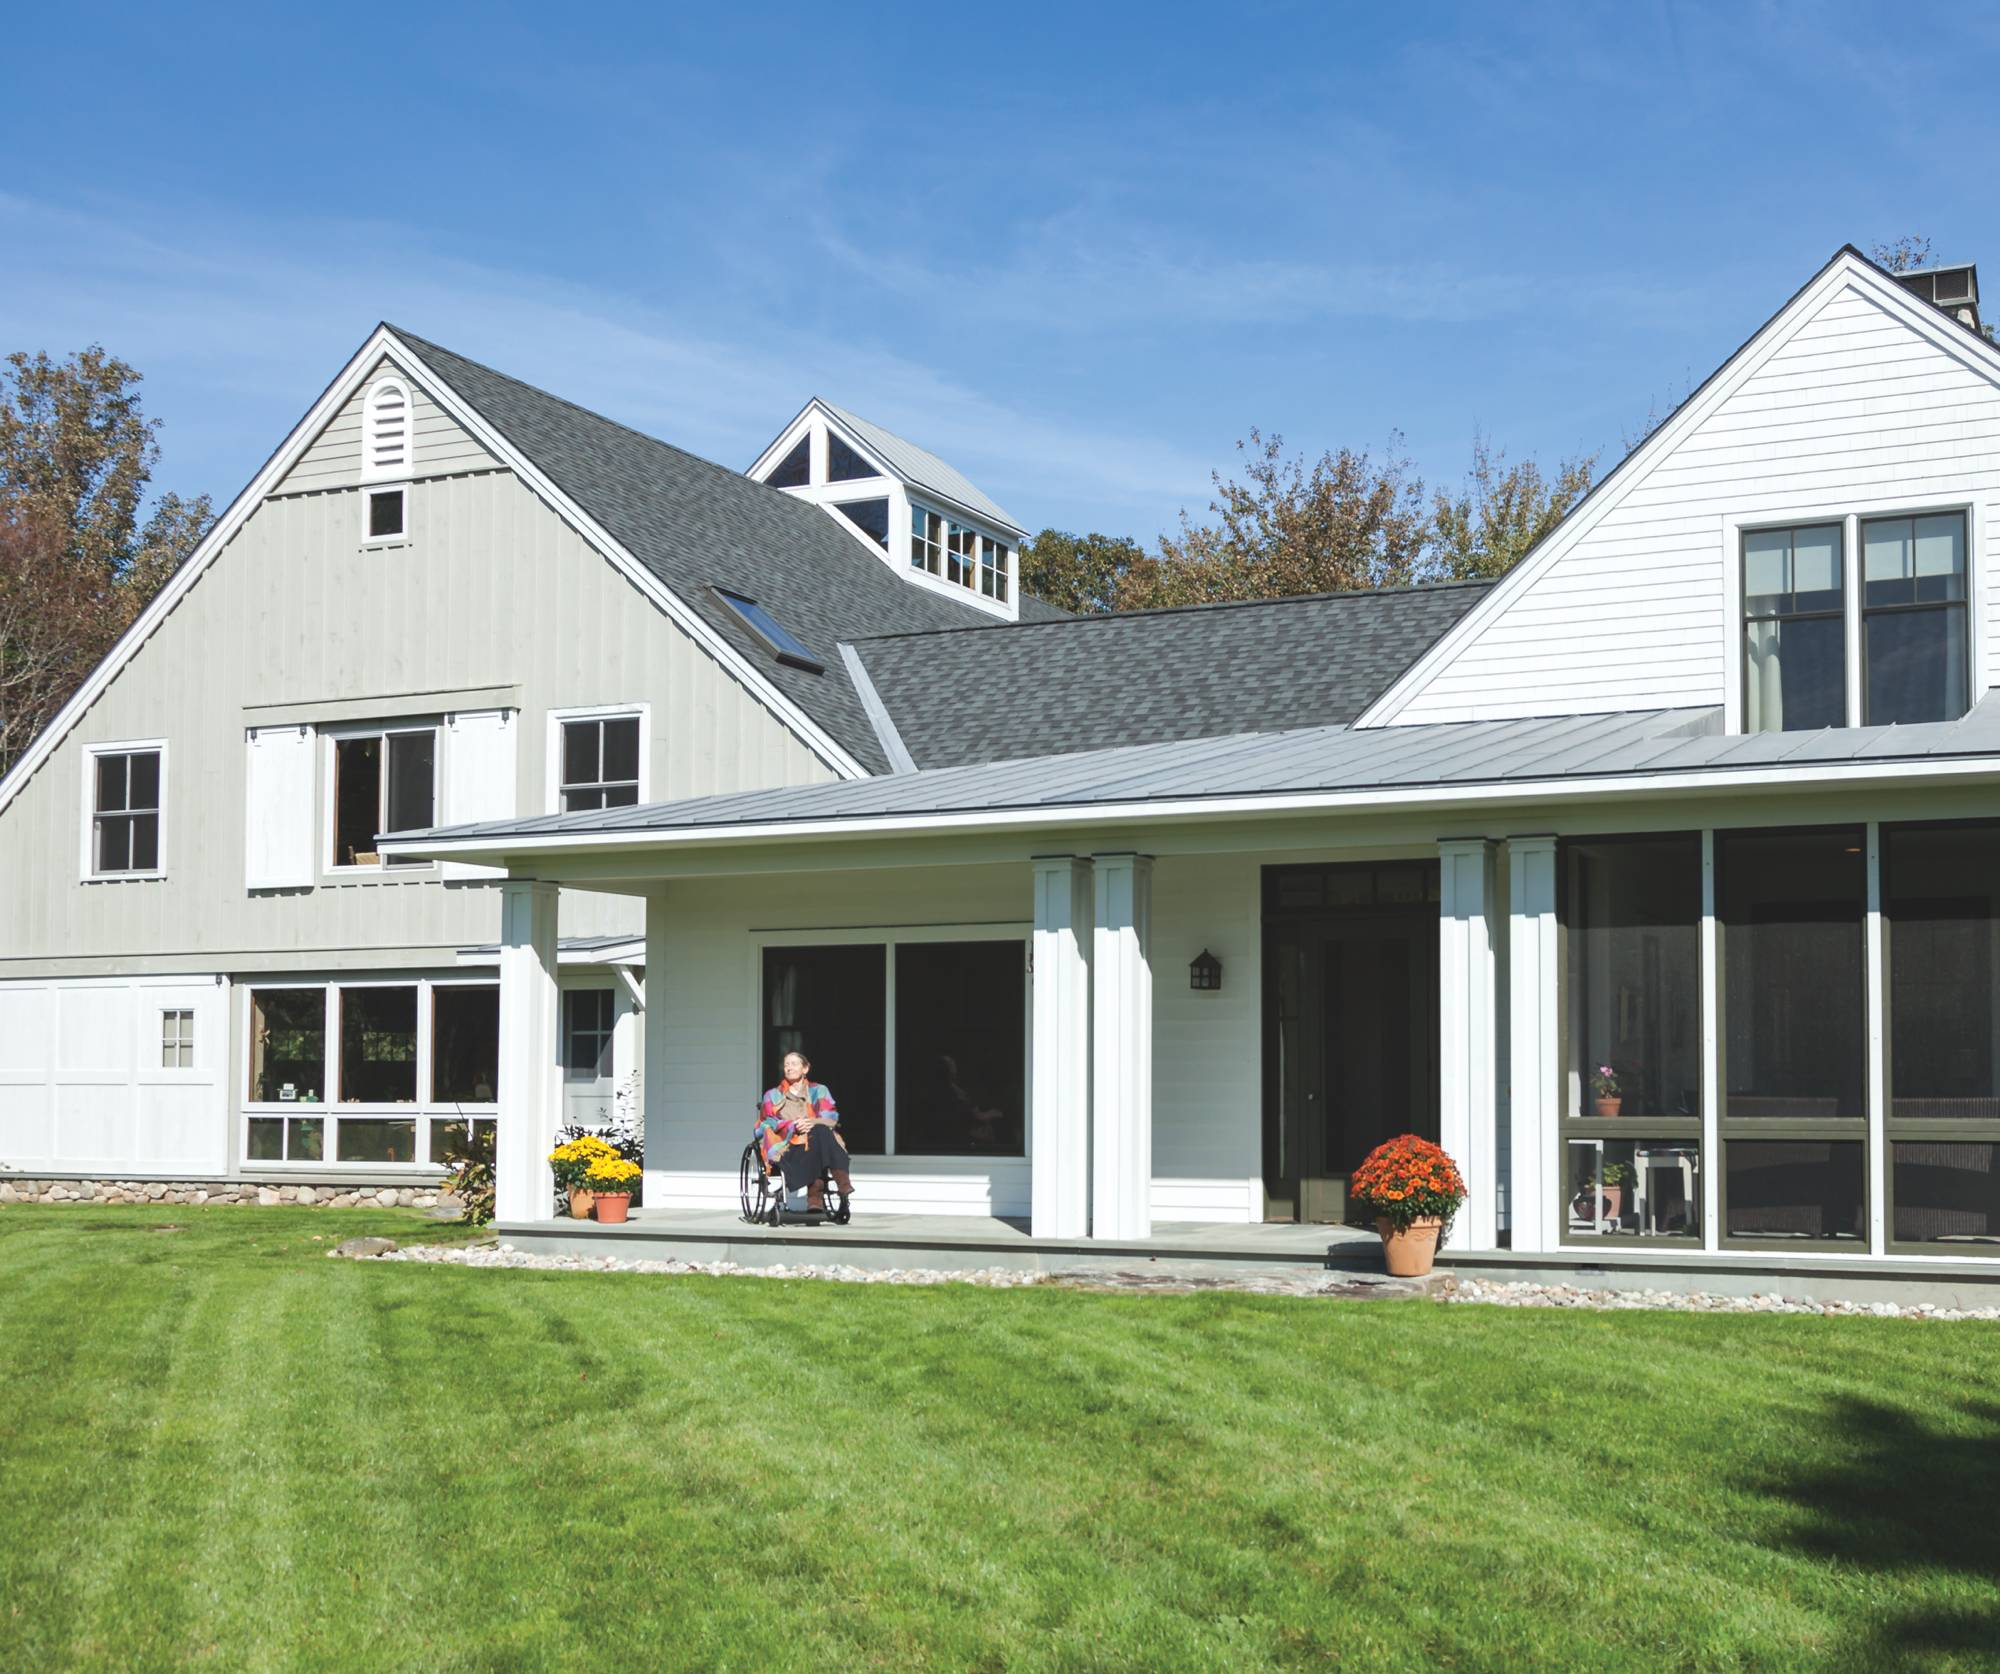 Come together a coastal maine home accessible to all for Maine home and design